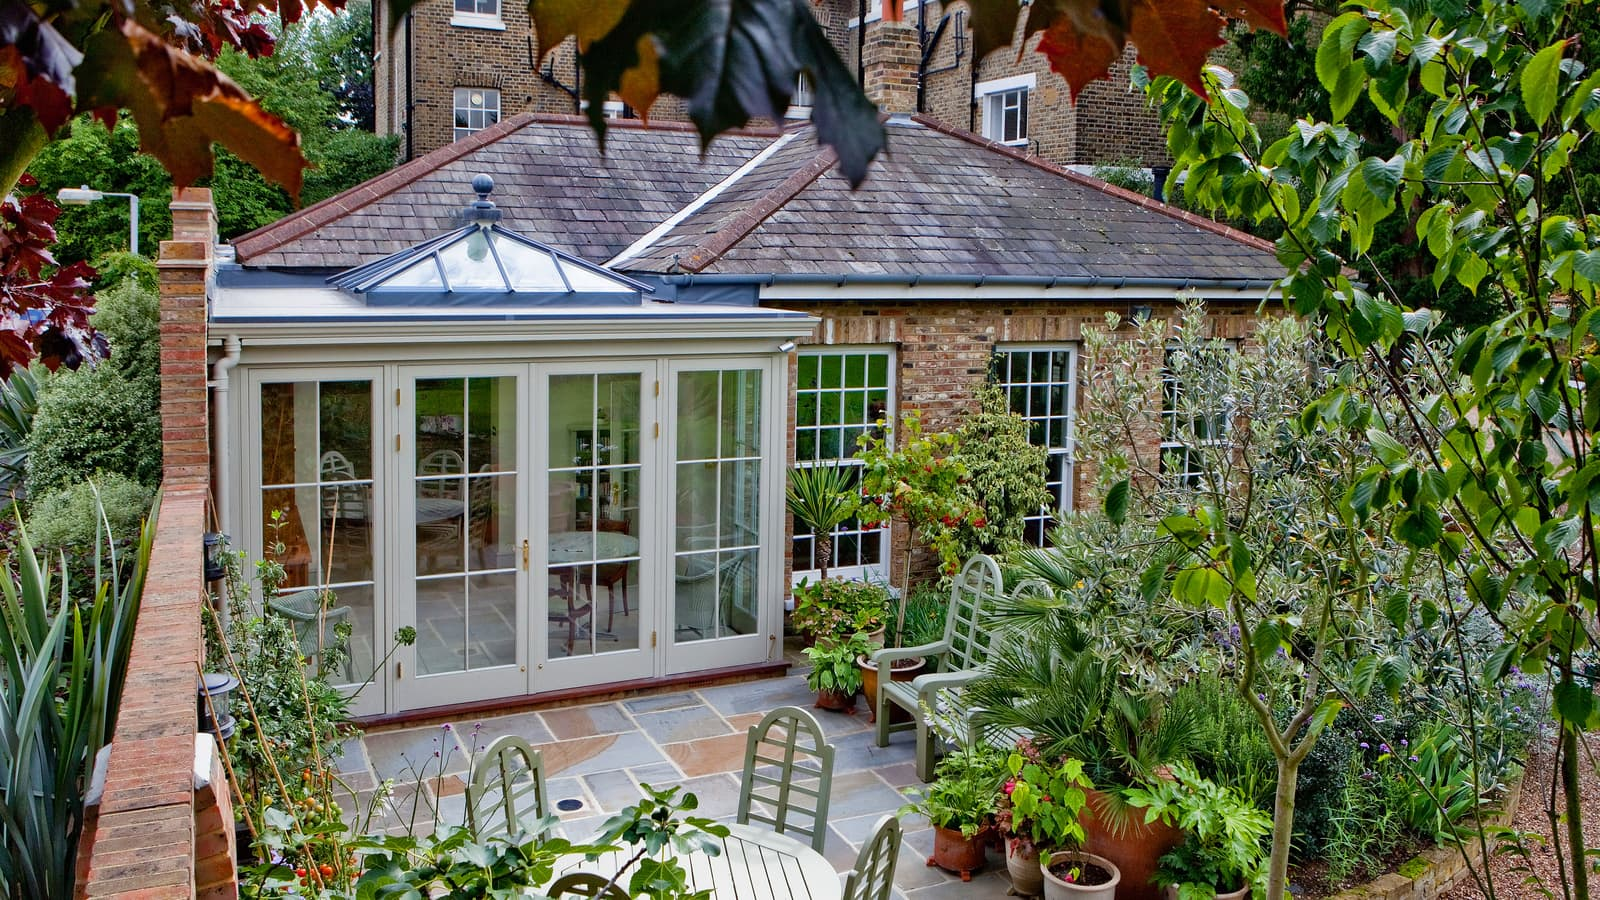 An elegant orangery garden room looking out onto a city courtyard garden